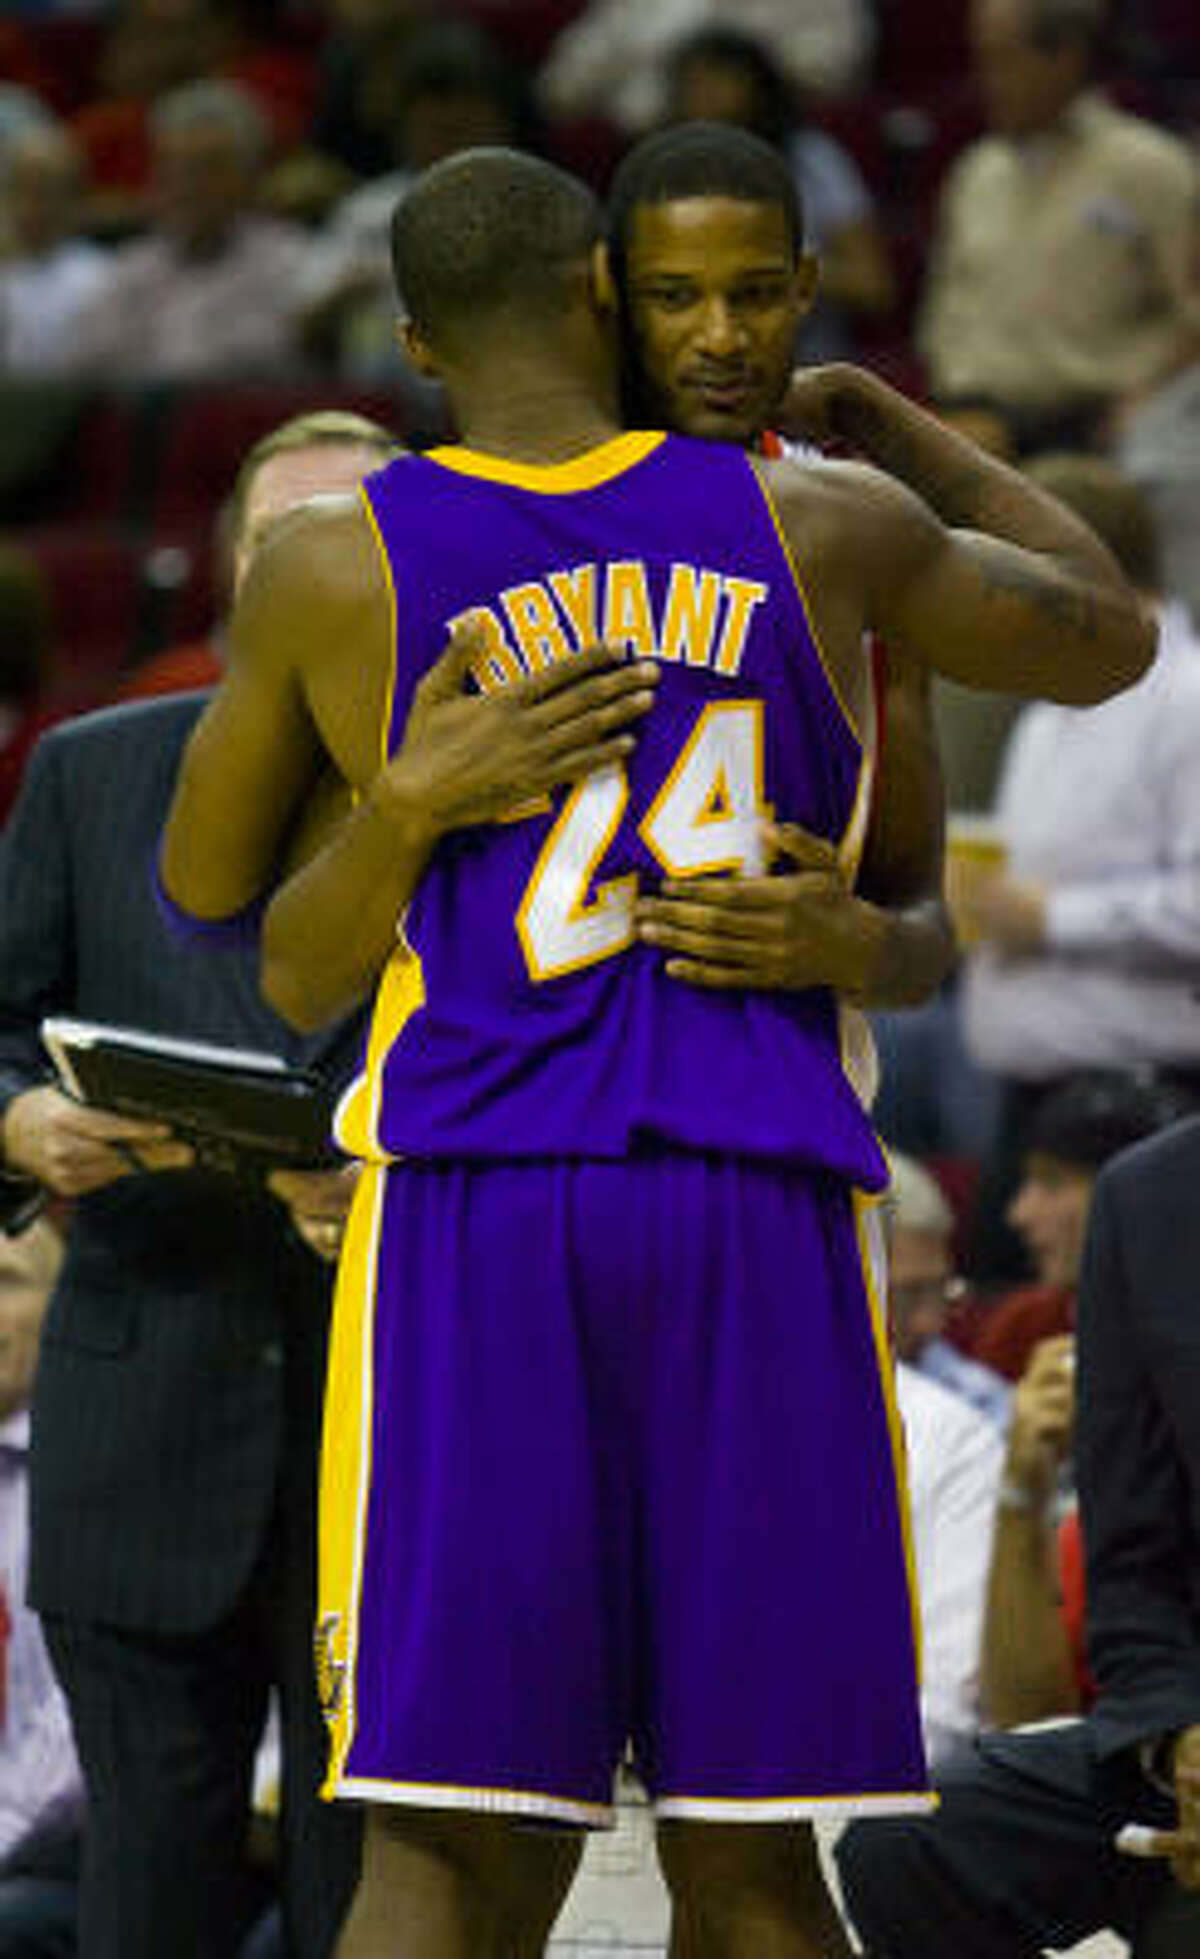 Rockets guard Trevor Ariza gets a hug from the Lakers' Kobe Bryant before the start of the game.